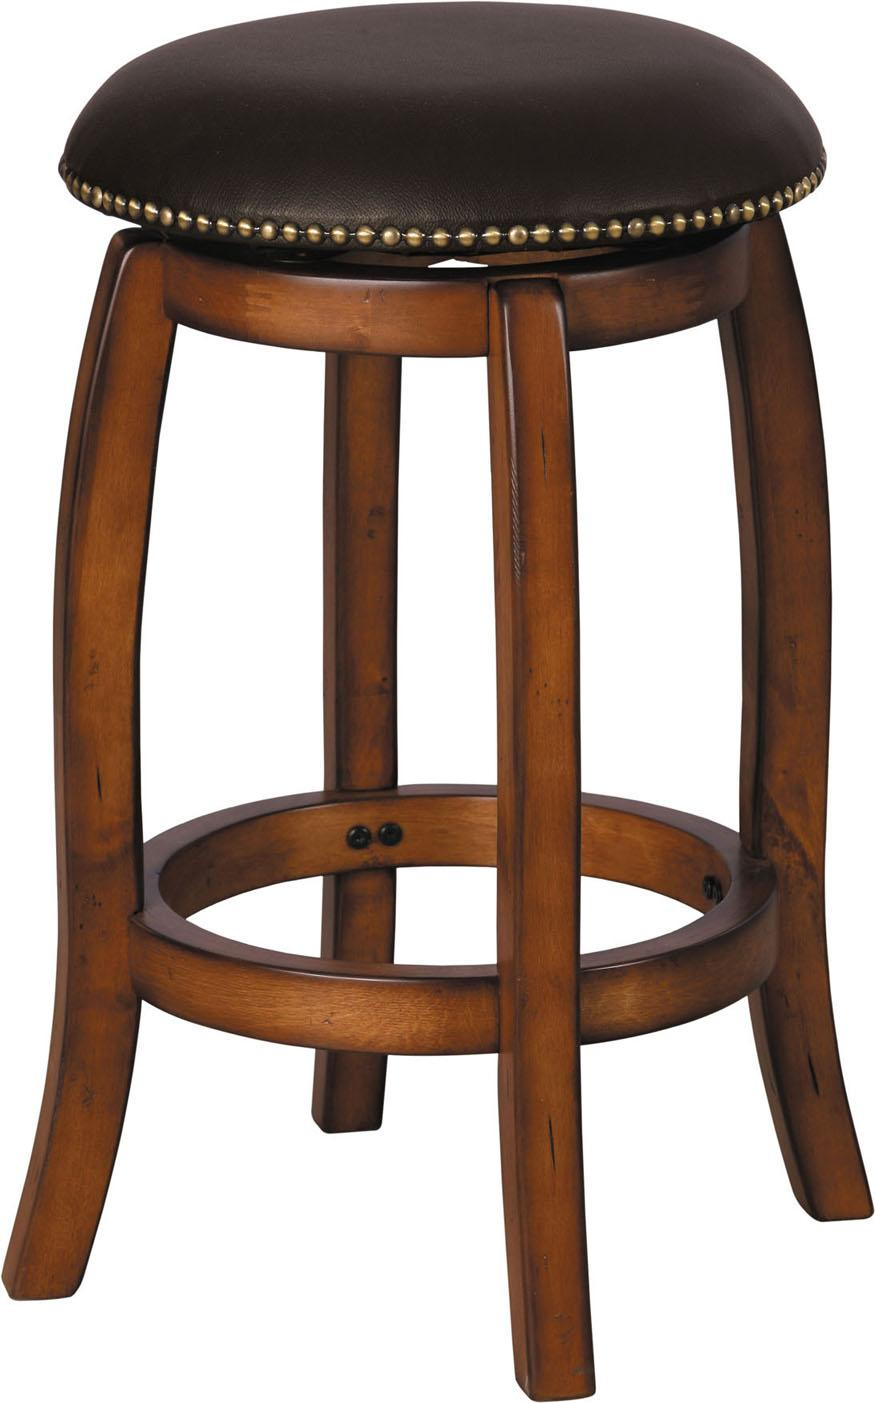 Acme Furniture Chelsea Leather Swivel Counter Stool - Item Number: 07247